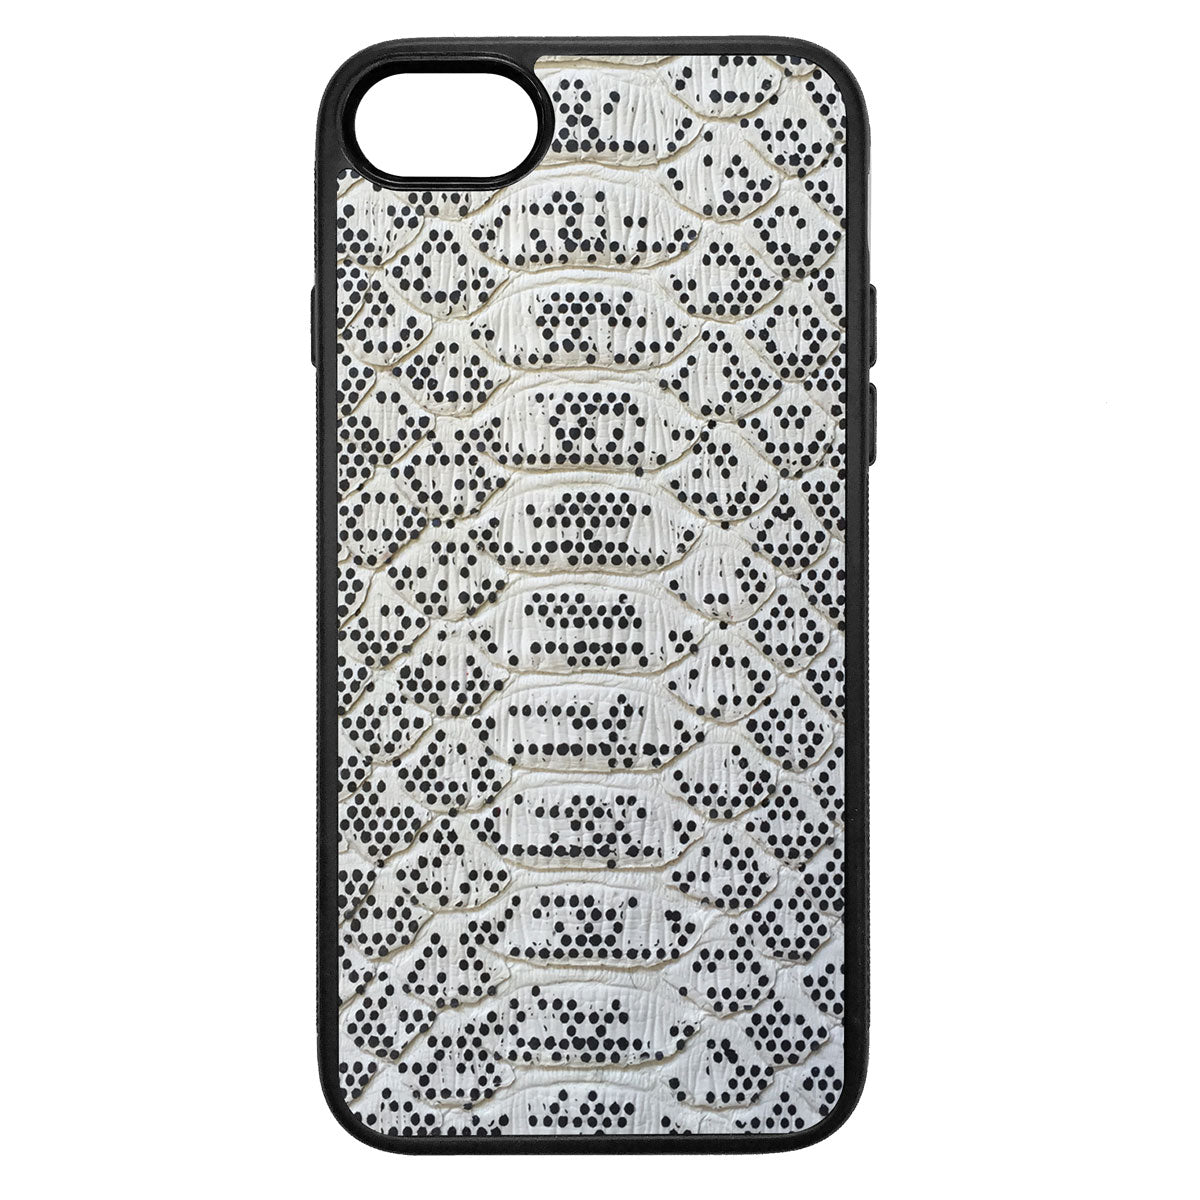 Pixelated Python iPhone 7 Leather Case